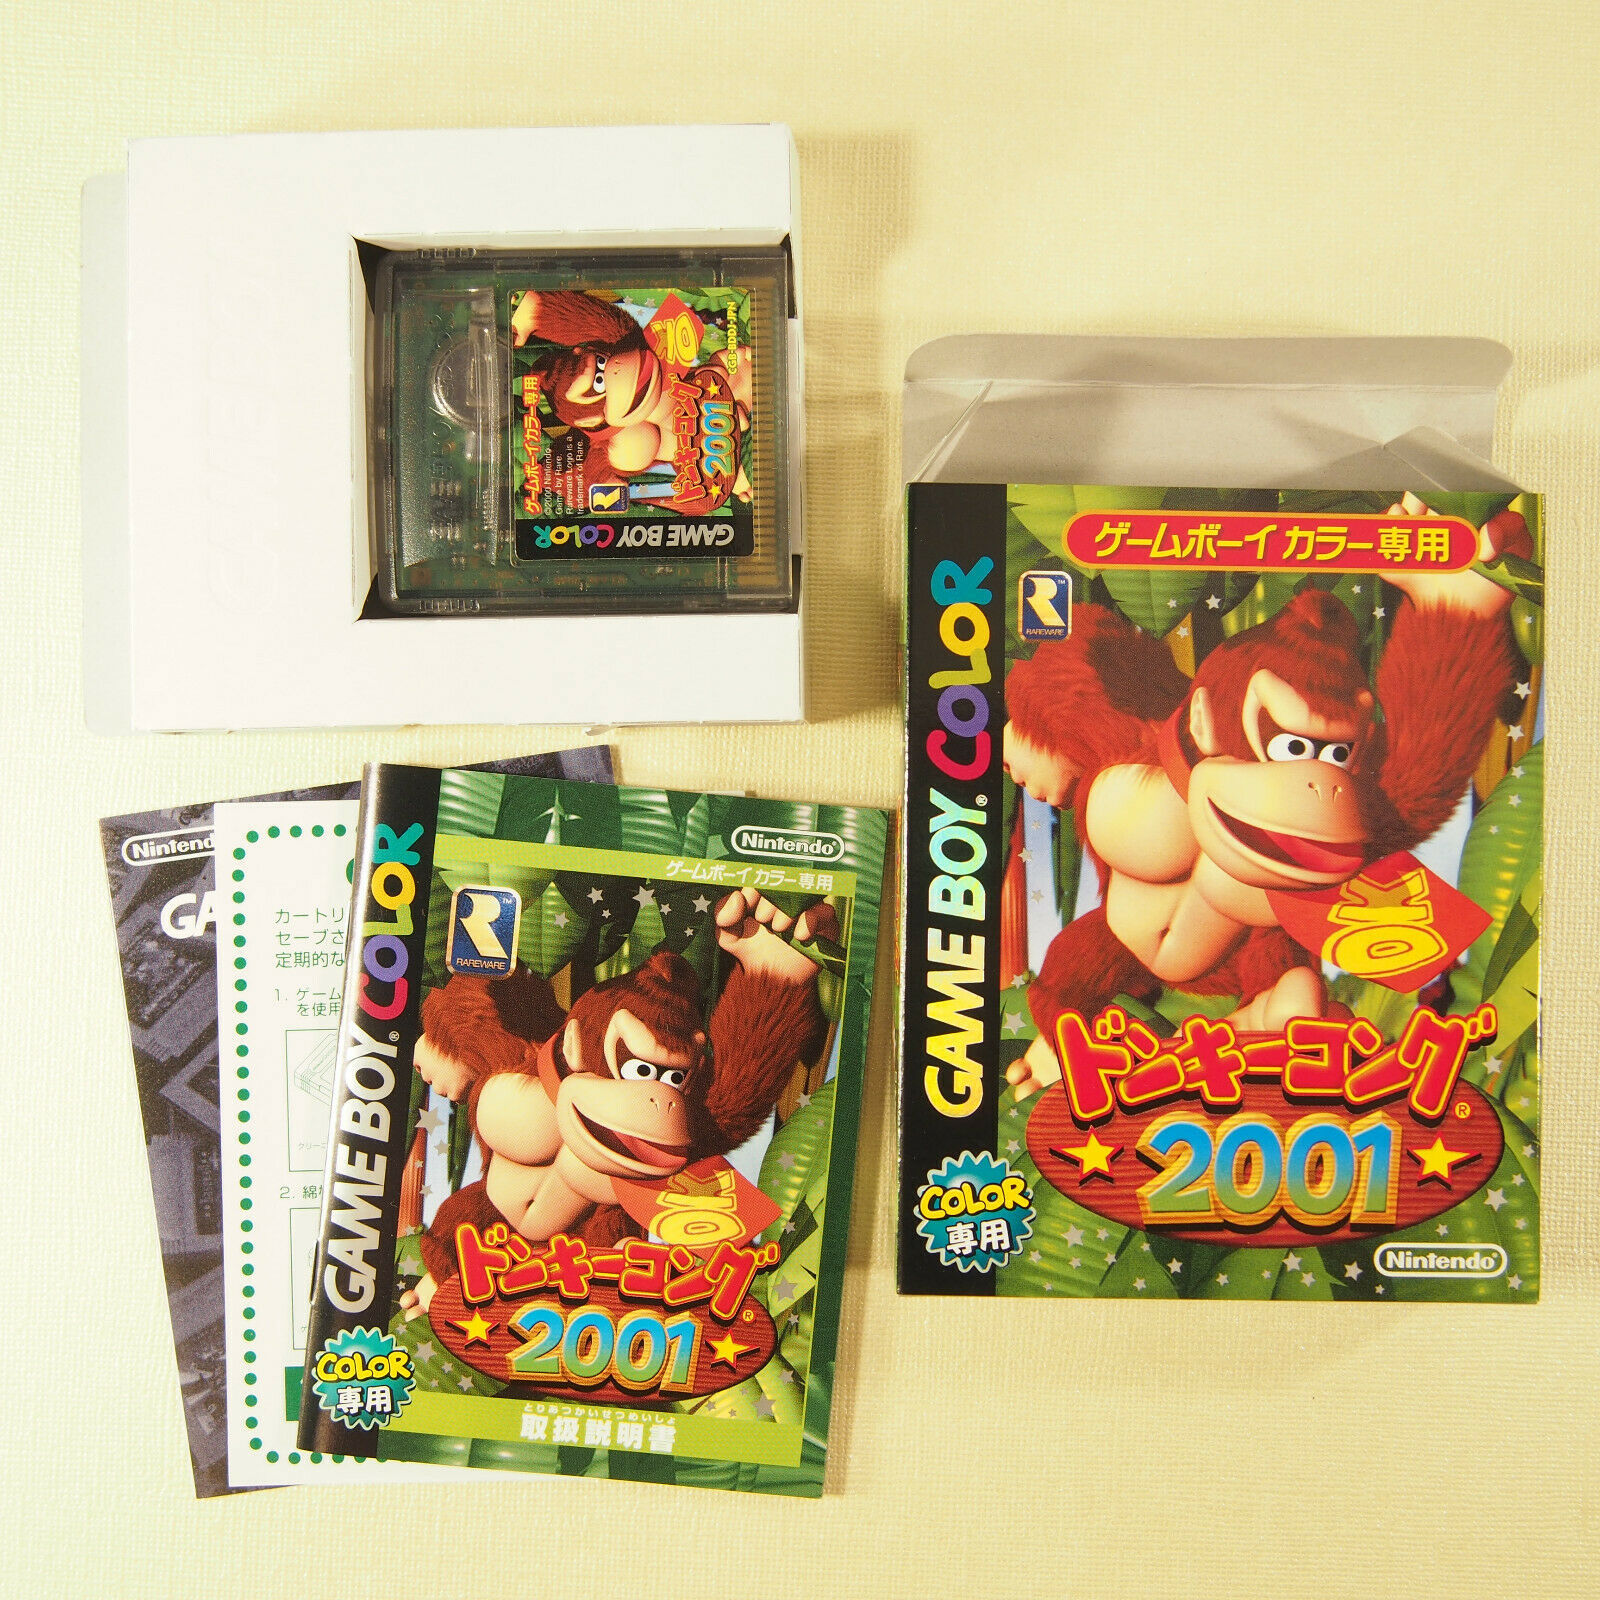 Donkey Kong 2001 Complete in Box (Nintendo Gameboy Color GBC, 2001) Japan